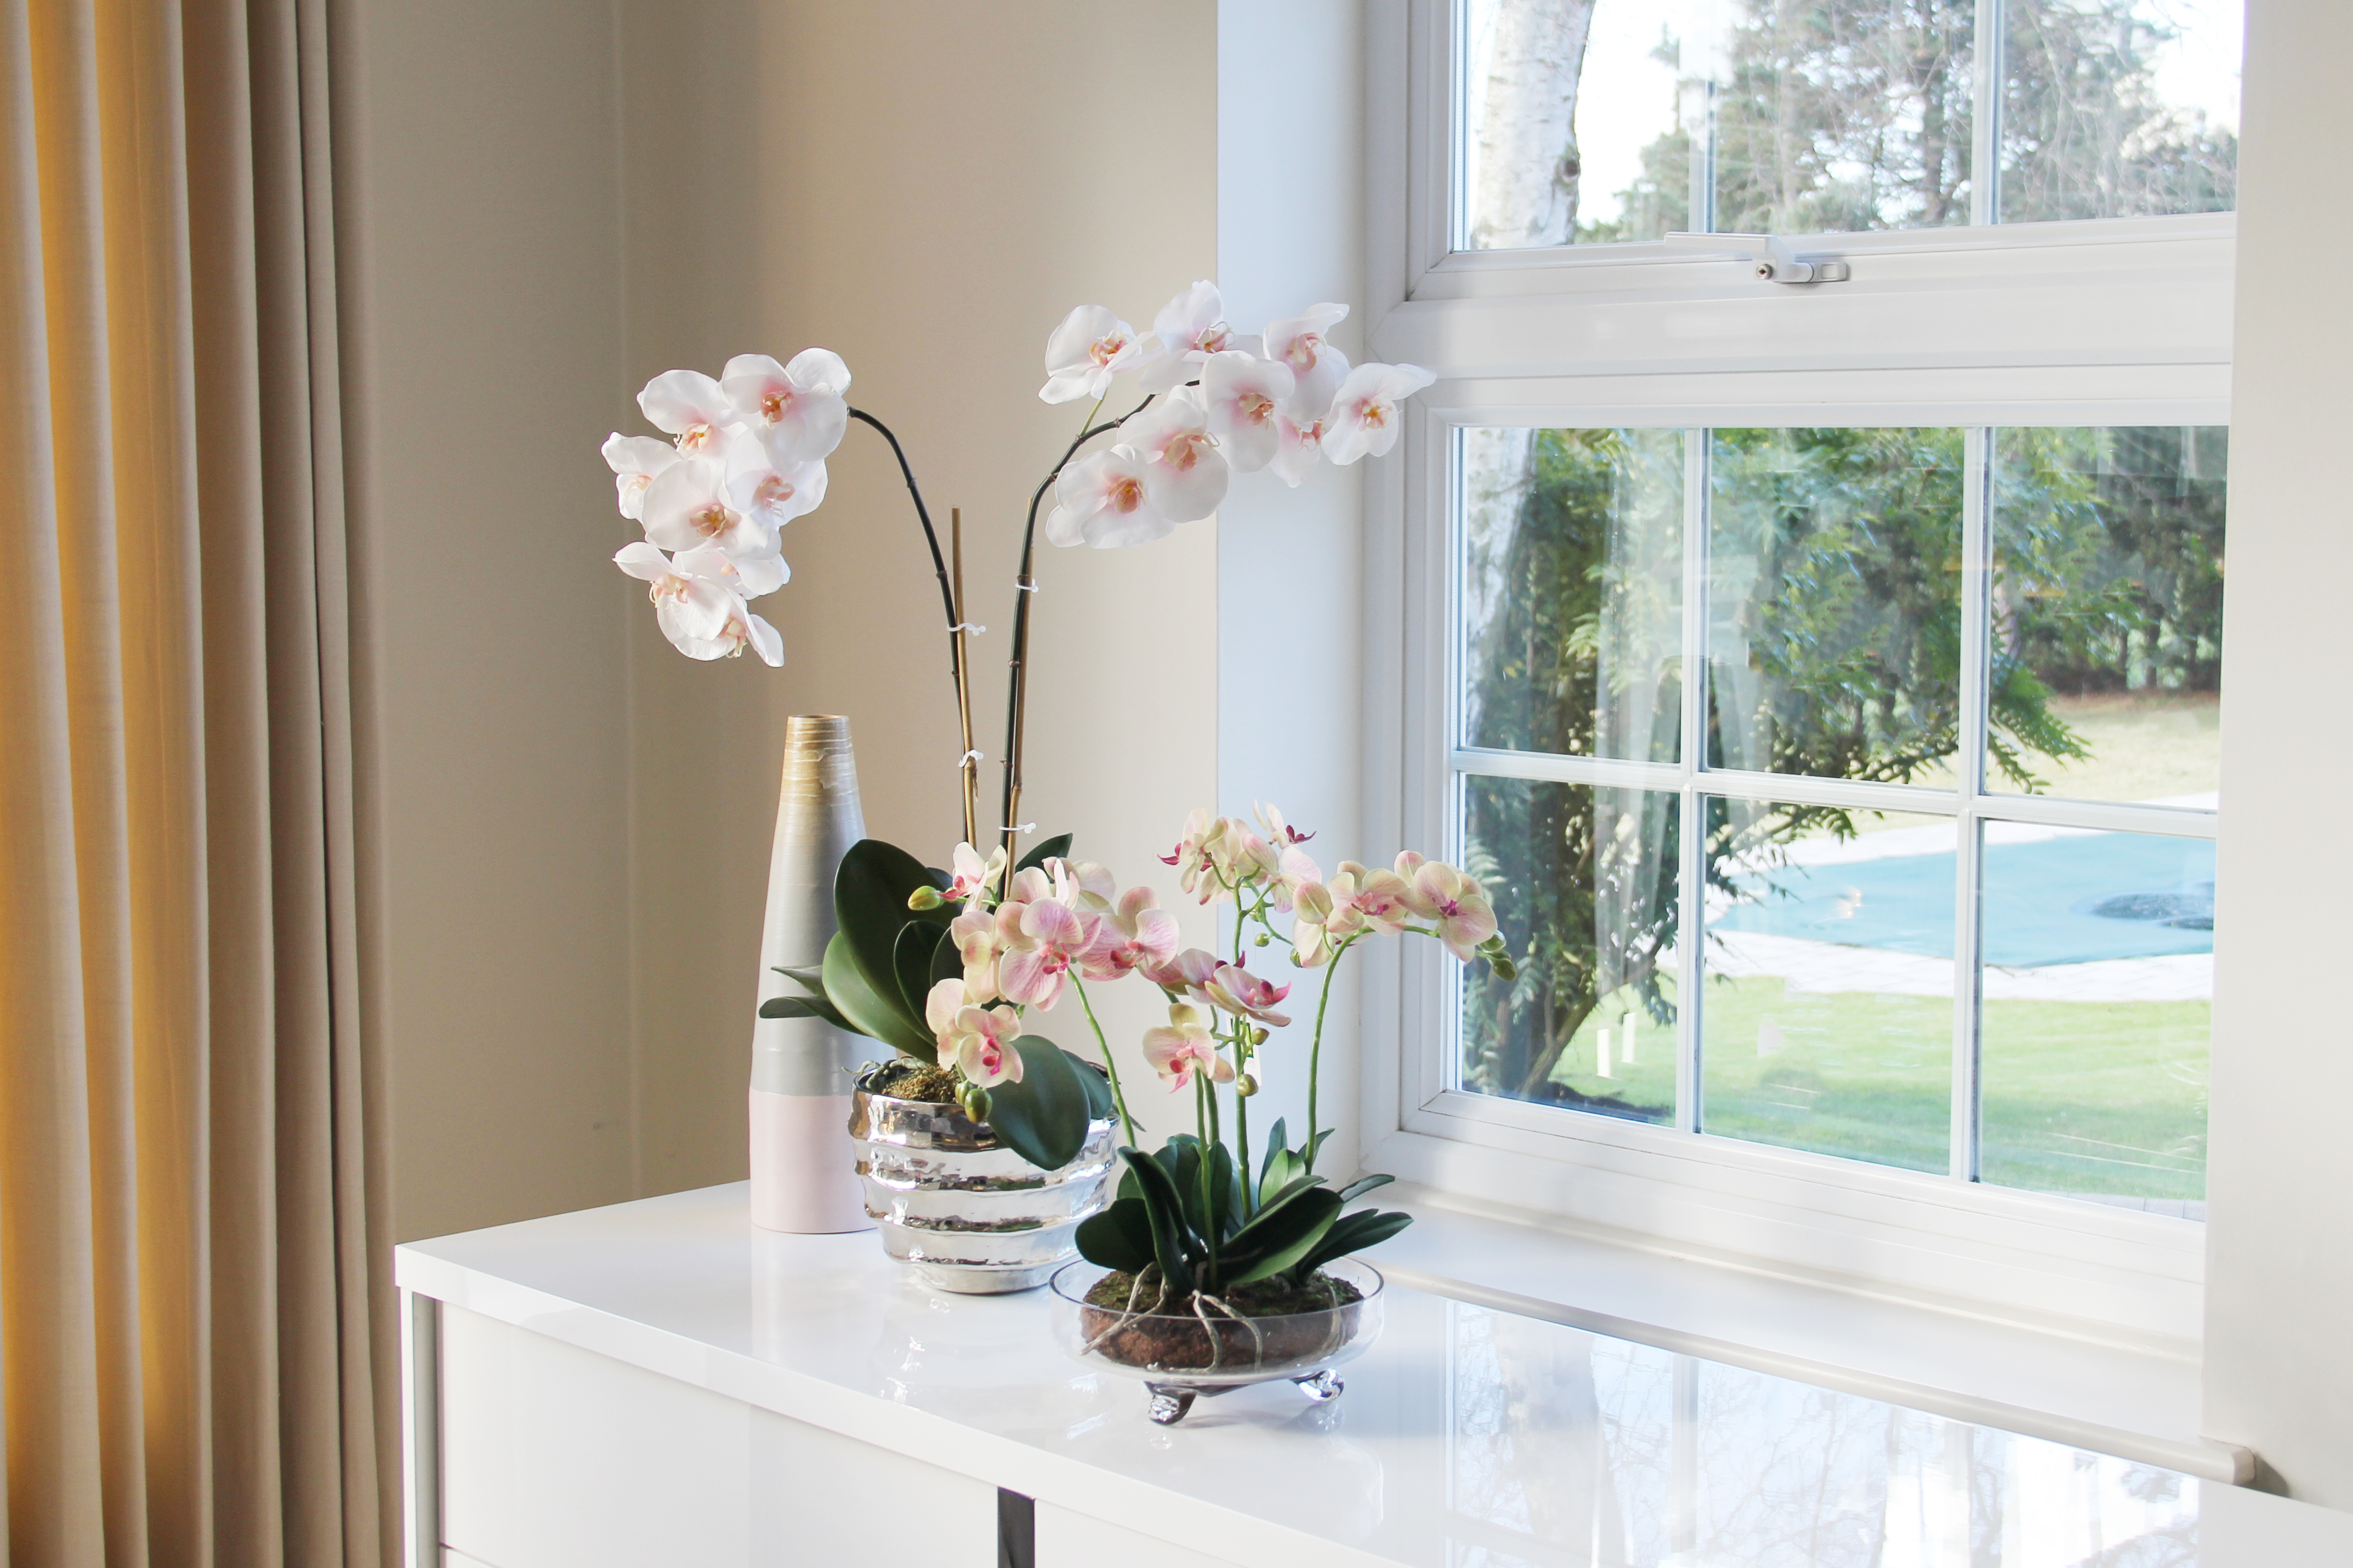 Instant Bank Holiday Updates for Your Home 5